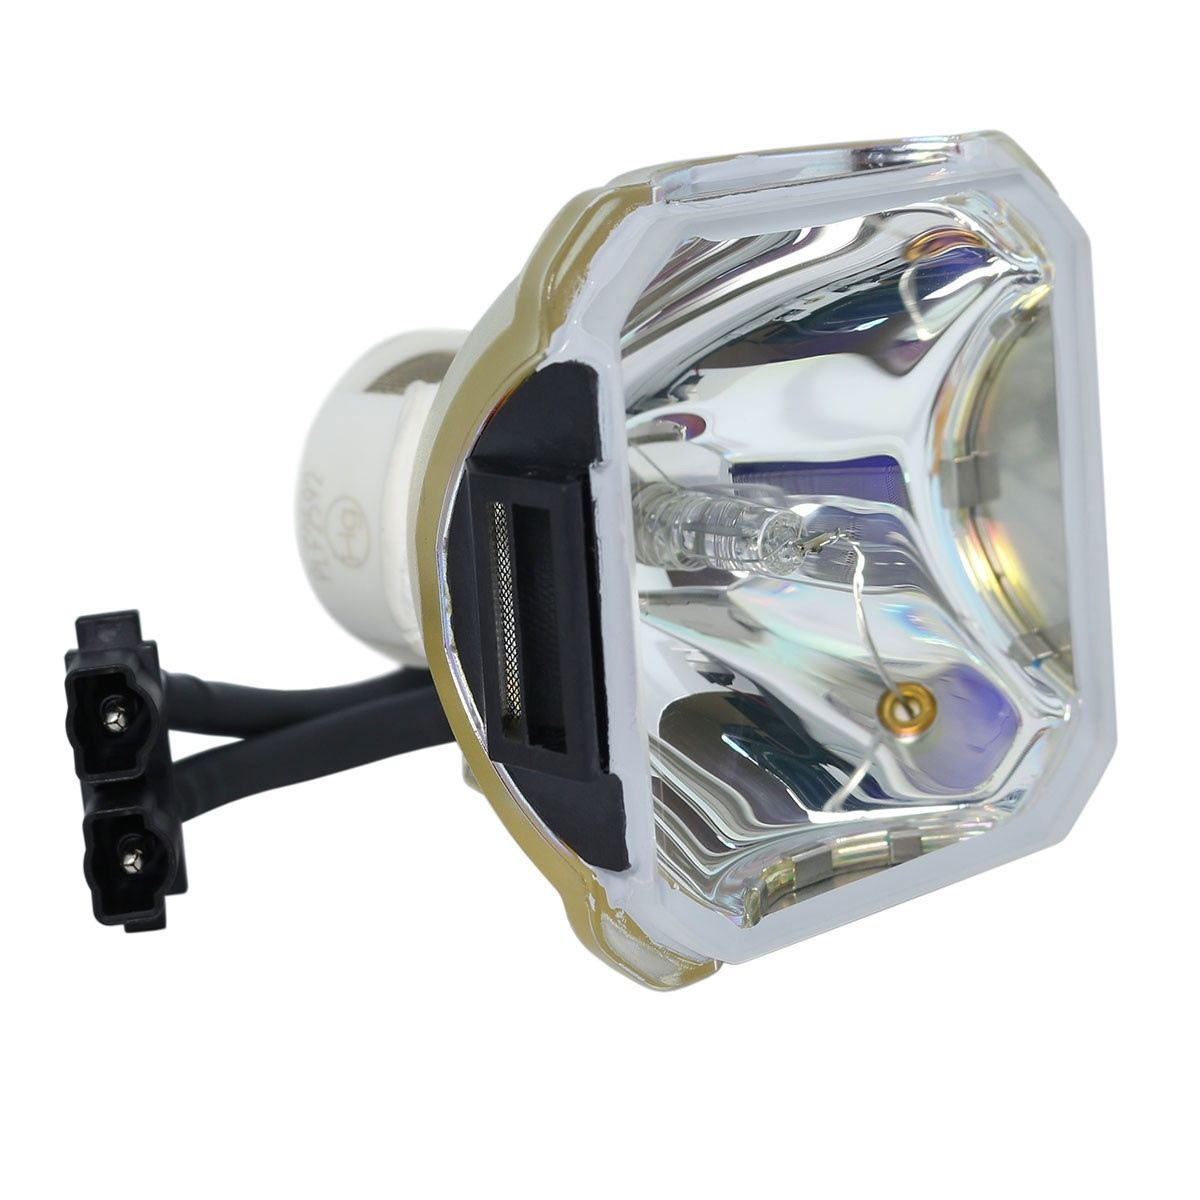 Compatible Bare Bulb 78-6969-9719-2 for 3M H80 / MP4100 / X80 / X80L Projector Lamp Bulbs without housing